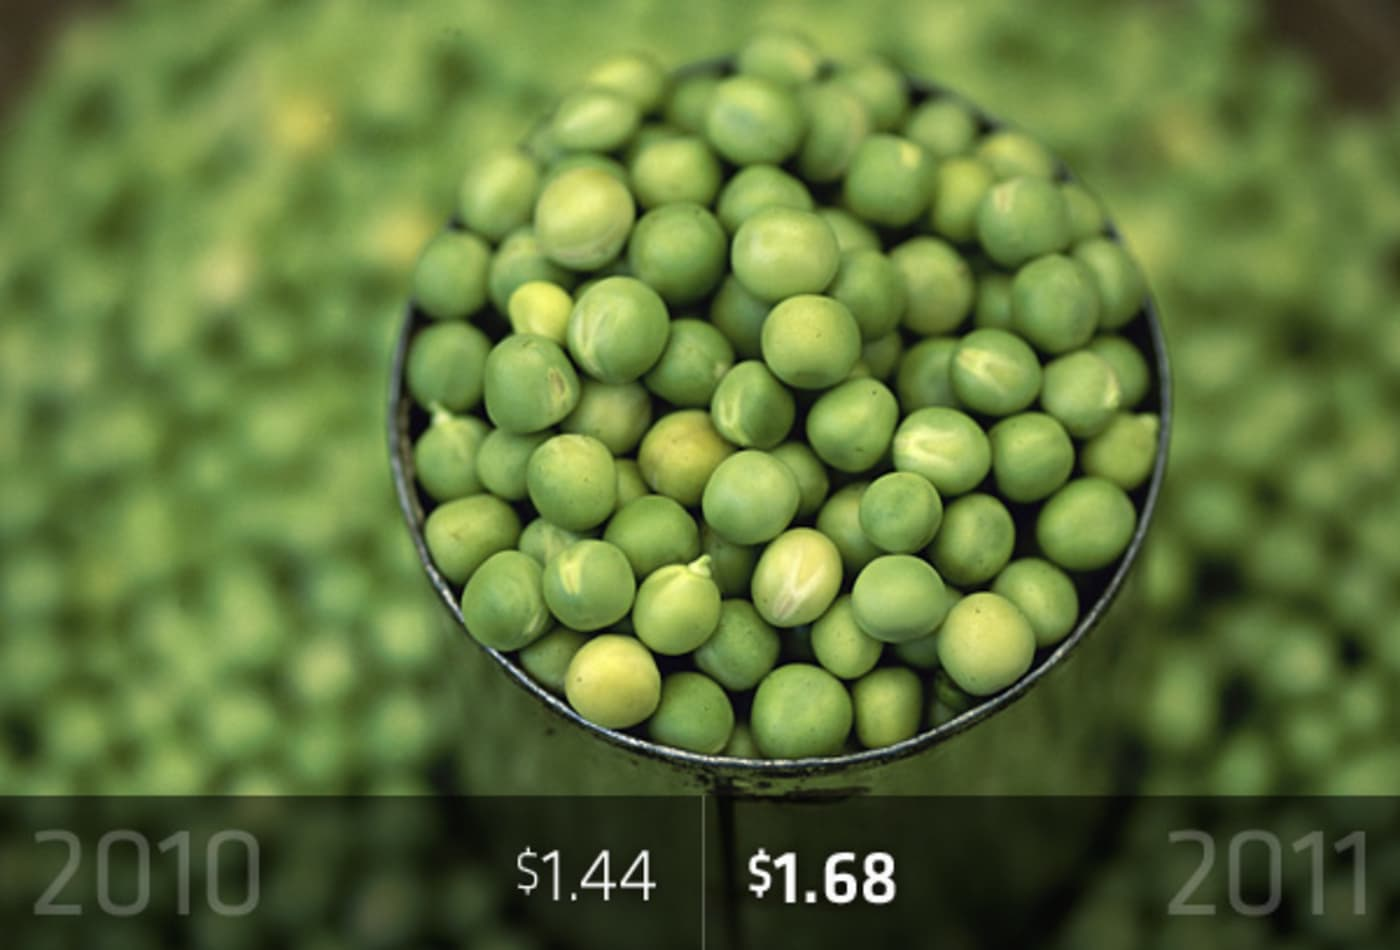 45358607 cost-of-thanksgiving-cnbc-2011-peas.jpg